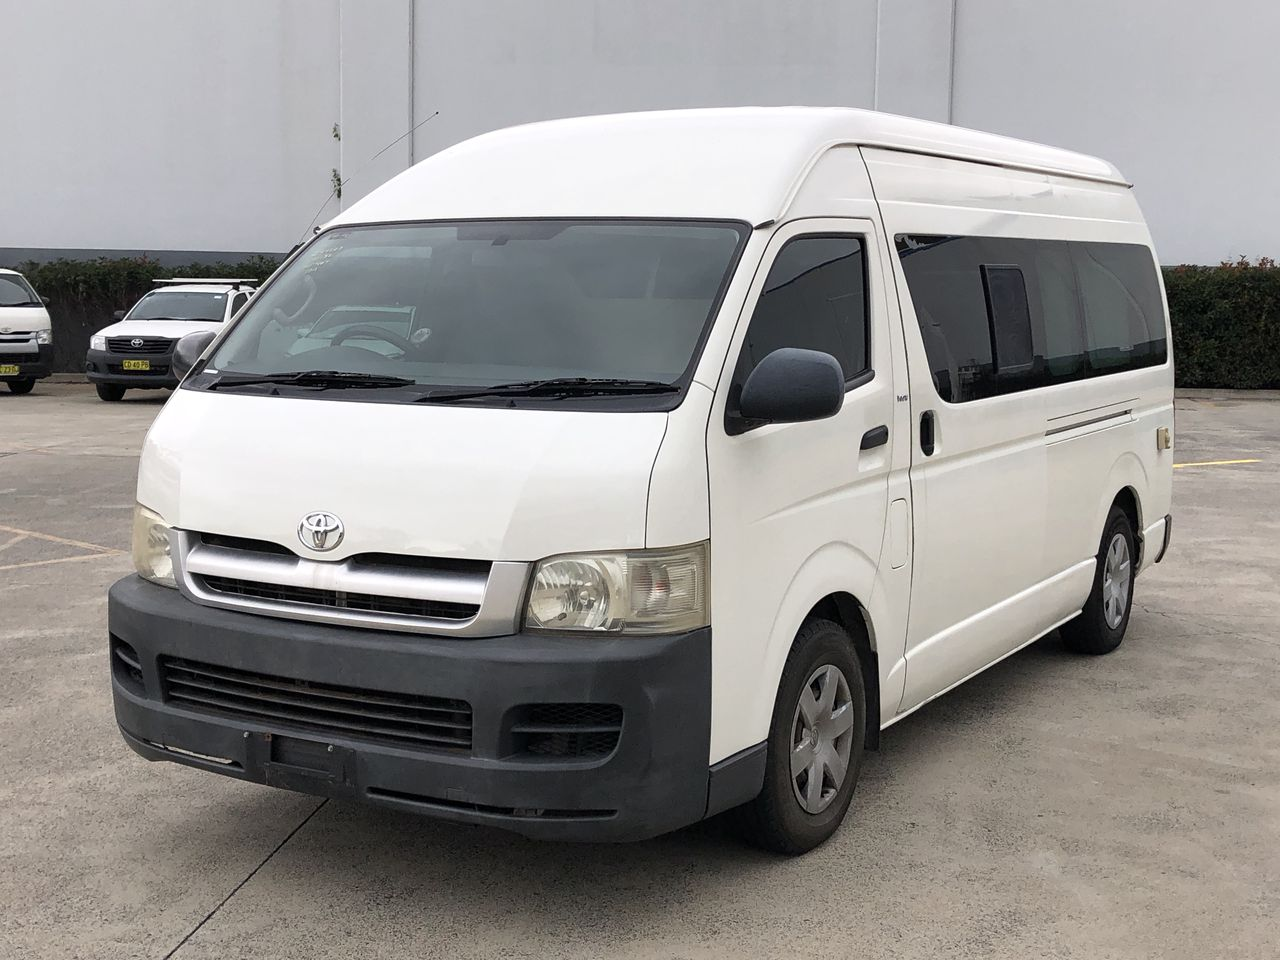 2007 Toyota Hiace Commuter TRH223R Automatic Bus